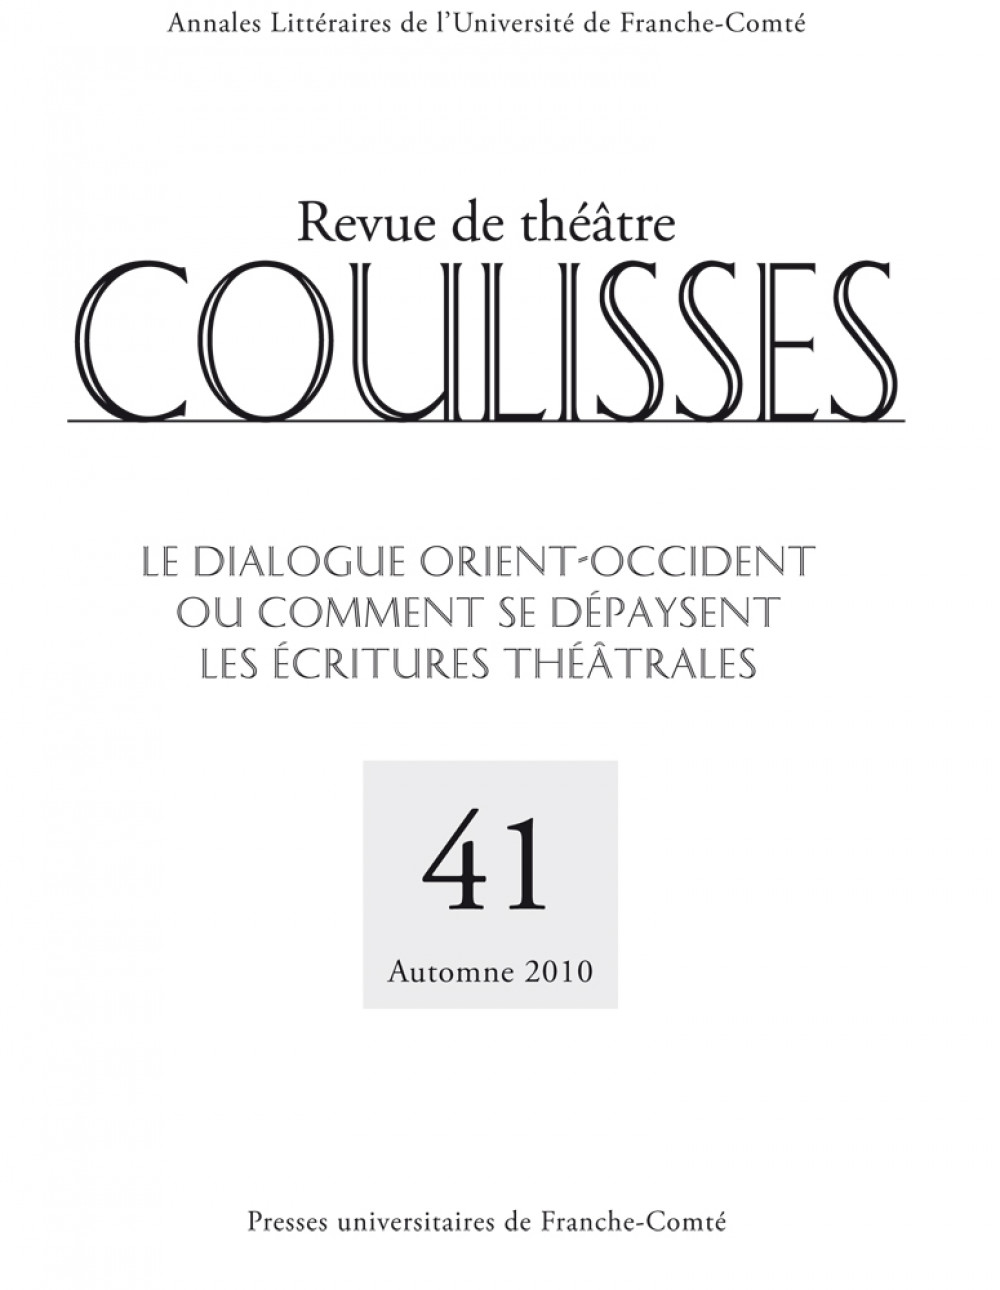 Coulisses 41